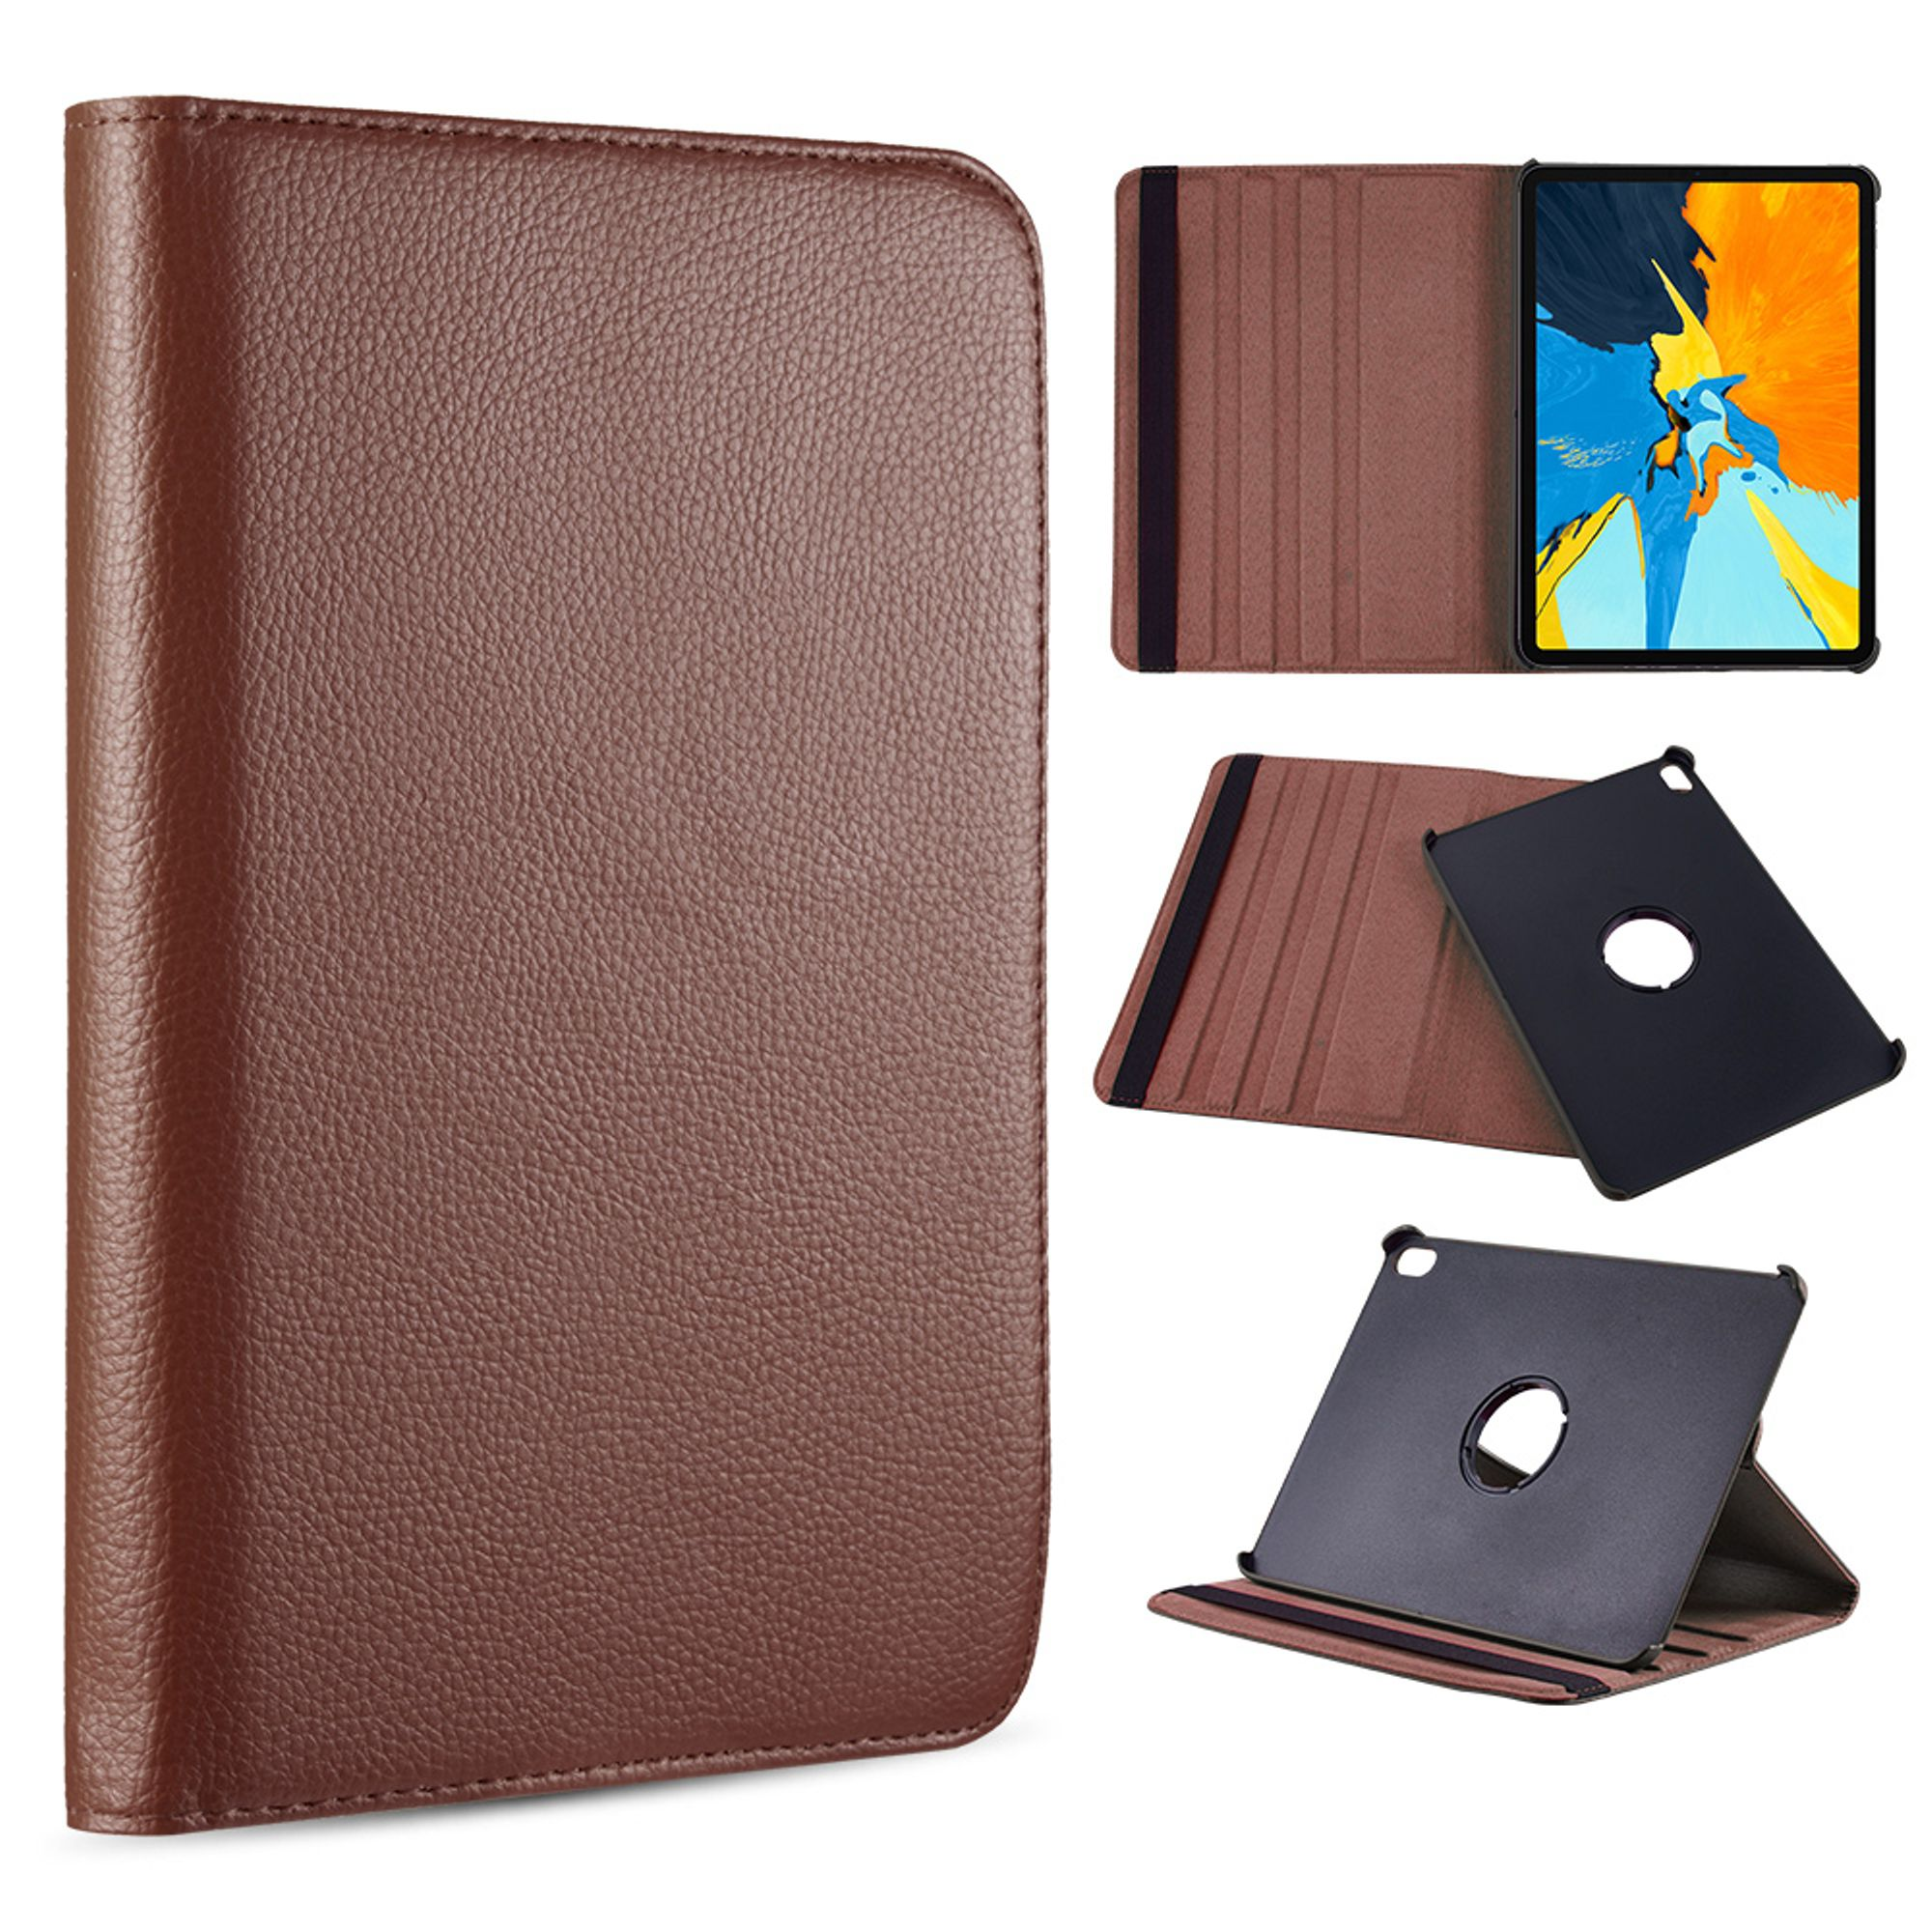 Apple iPad Pro 12.9 (2018) Case, by Insten Rotatable Stand Dual Layer Hybrid Folio Flip Leather Case Cover For Apple iPad Pro 12.9 (2018) - Brown